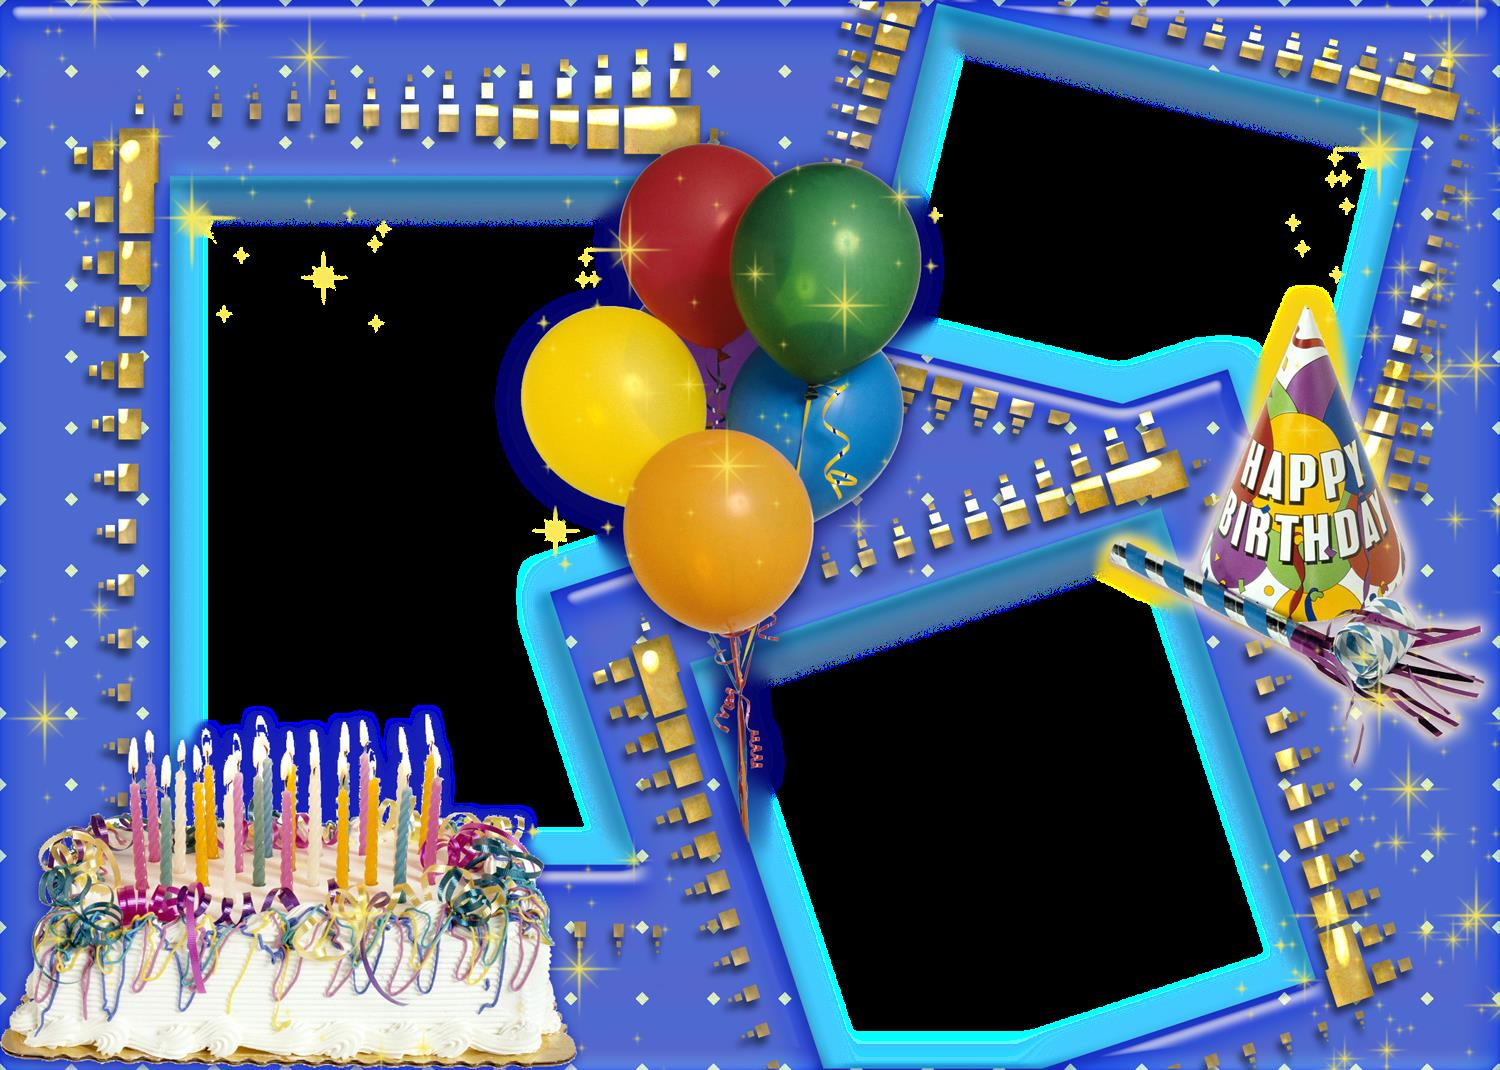 birthday background images for photoshop ; Birthday-Frame